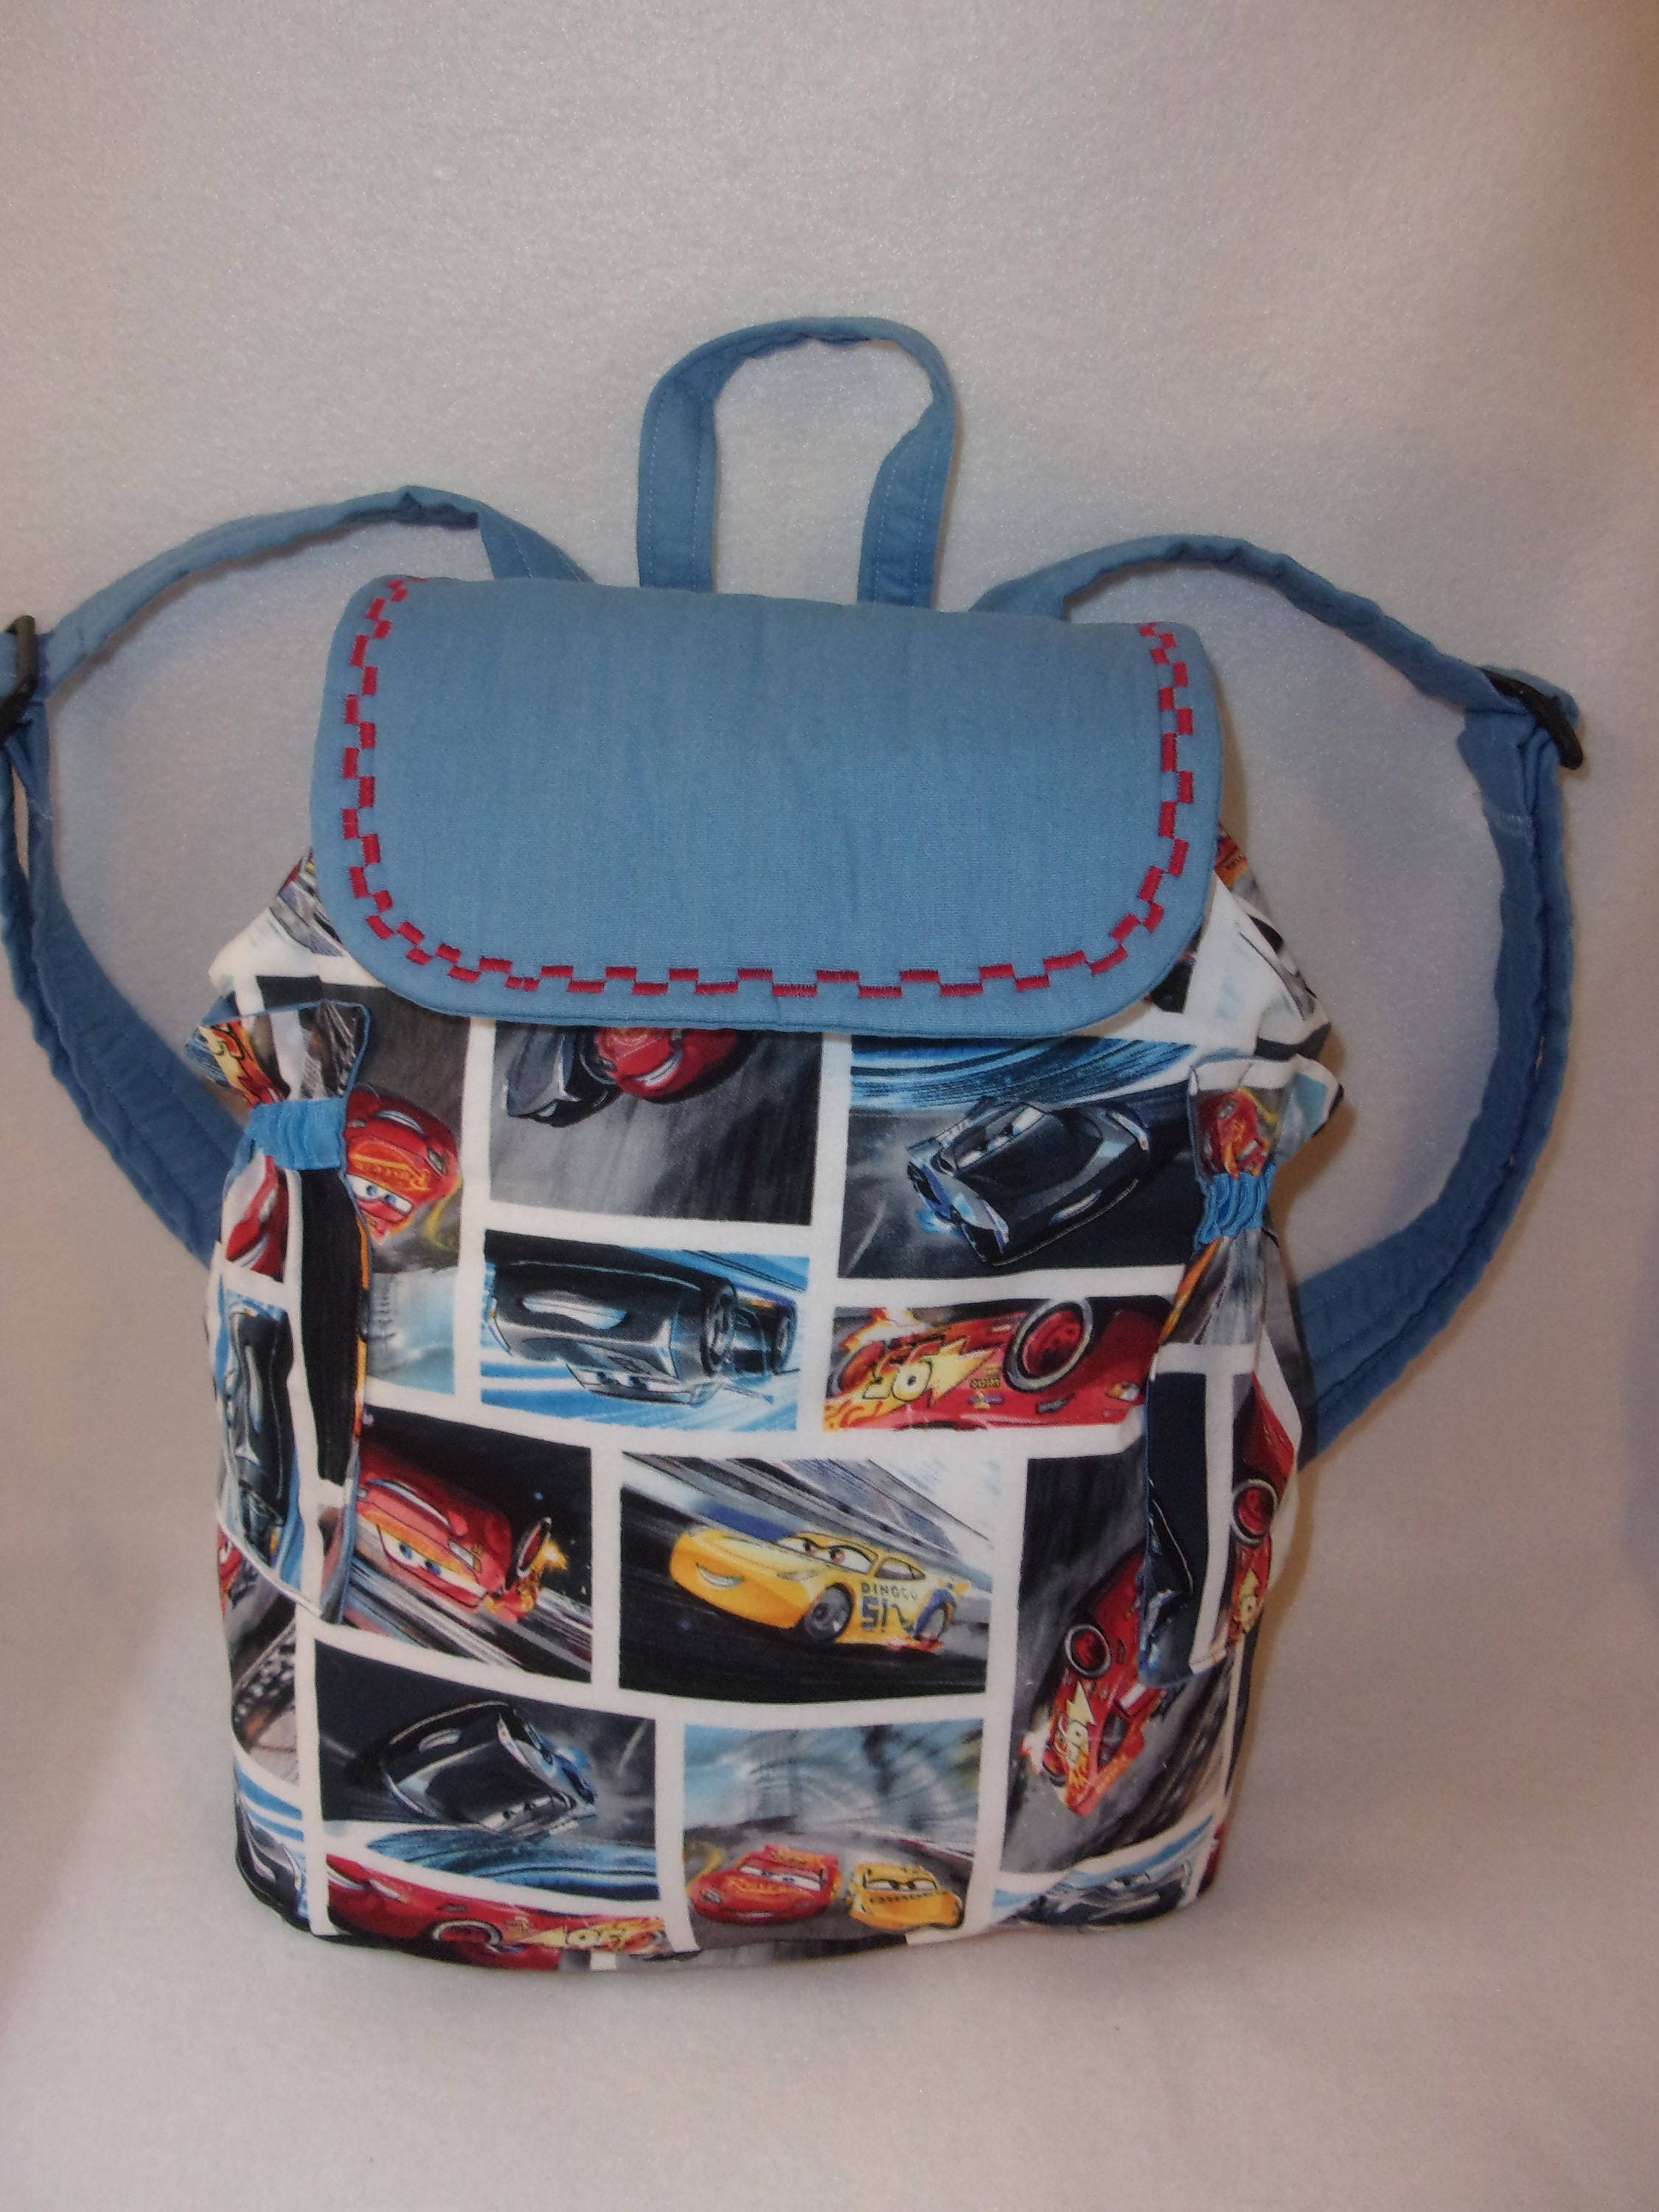 Pixar cars 3 back pack shool book bag college too 3 sizes 3 prints pixar cars 3 back pack shool book bag college too 3 sizes 3 prints personalize negle Images